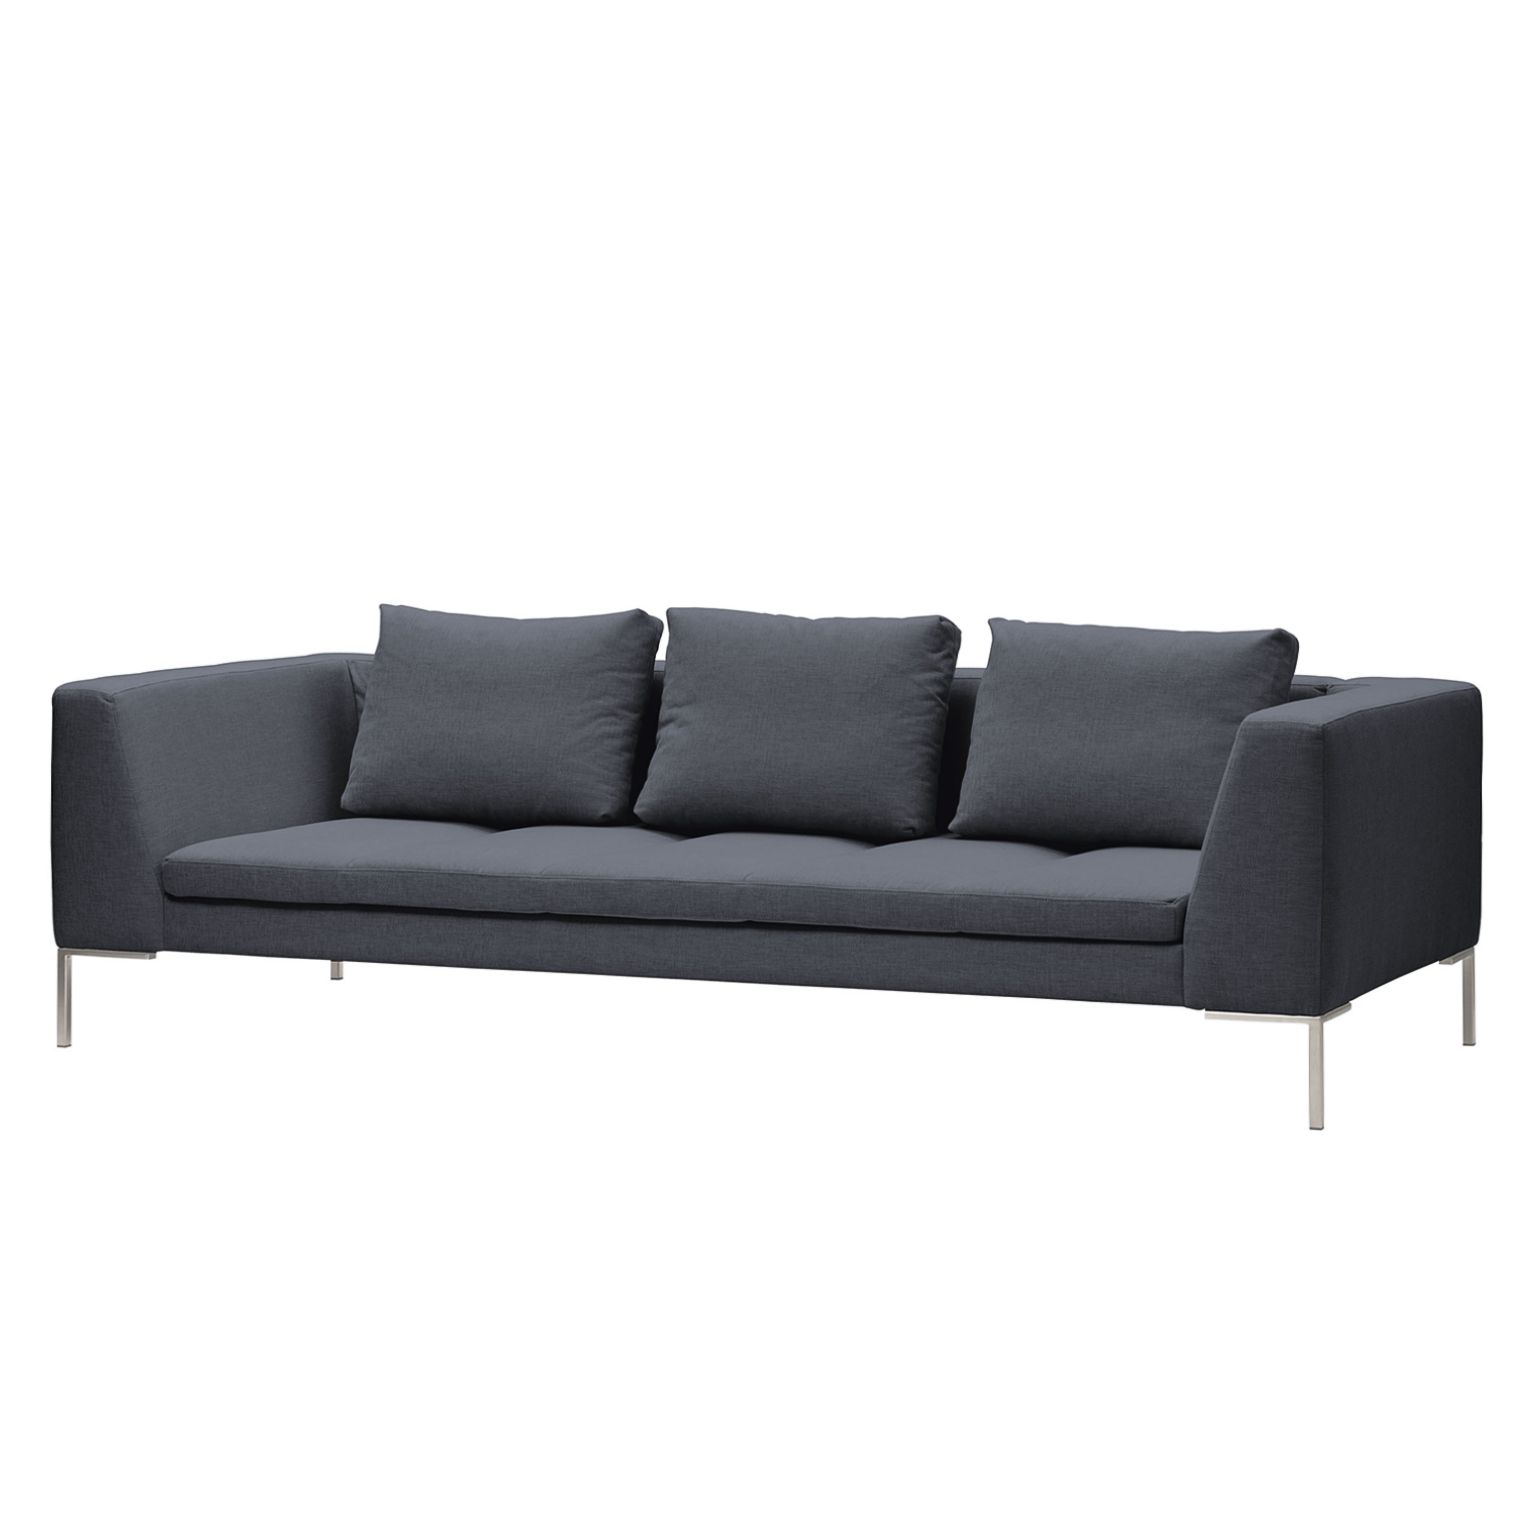 Sofa Madison (3-Sitzer) - Webstoff - Stoff Milan Anthrazit